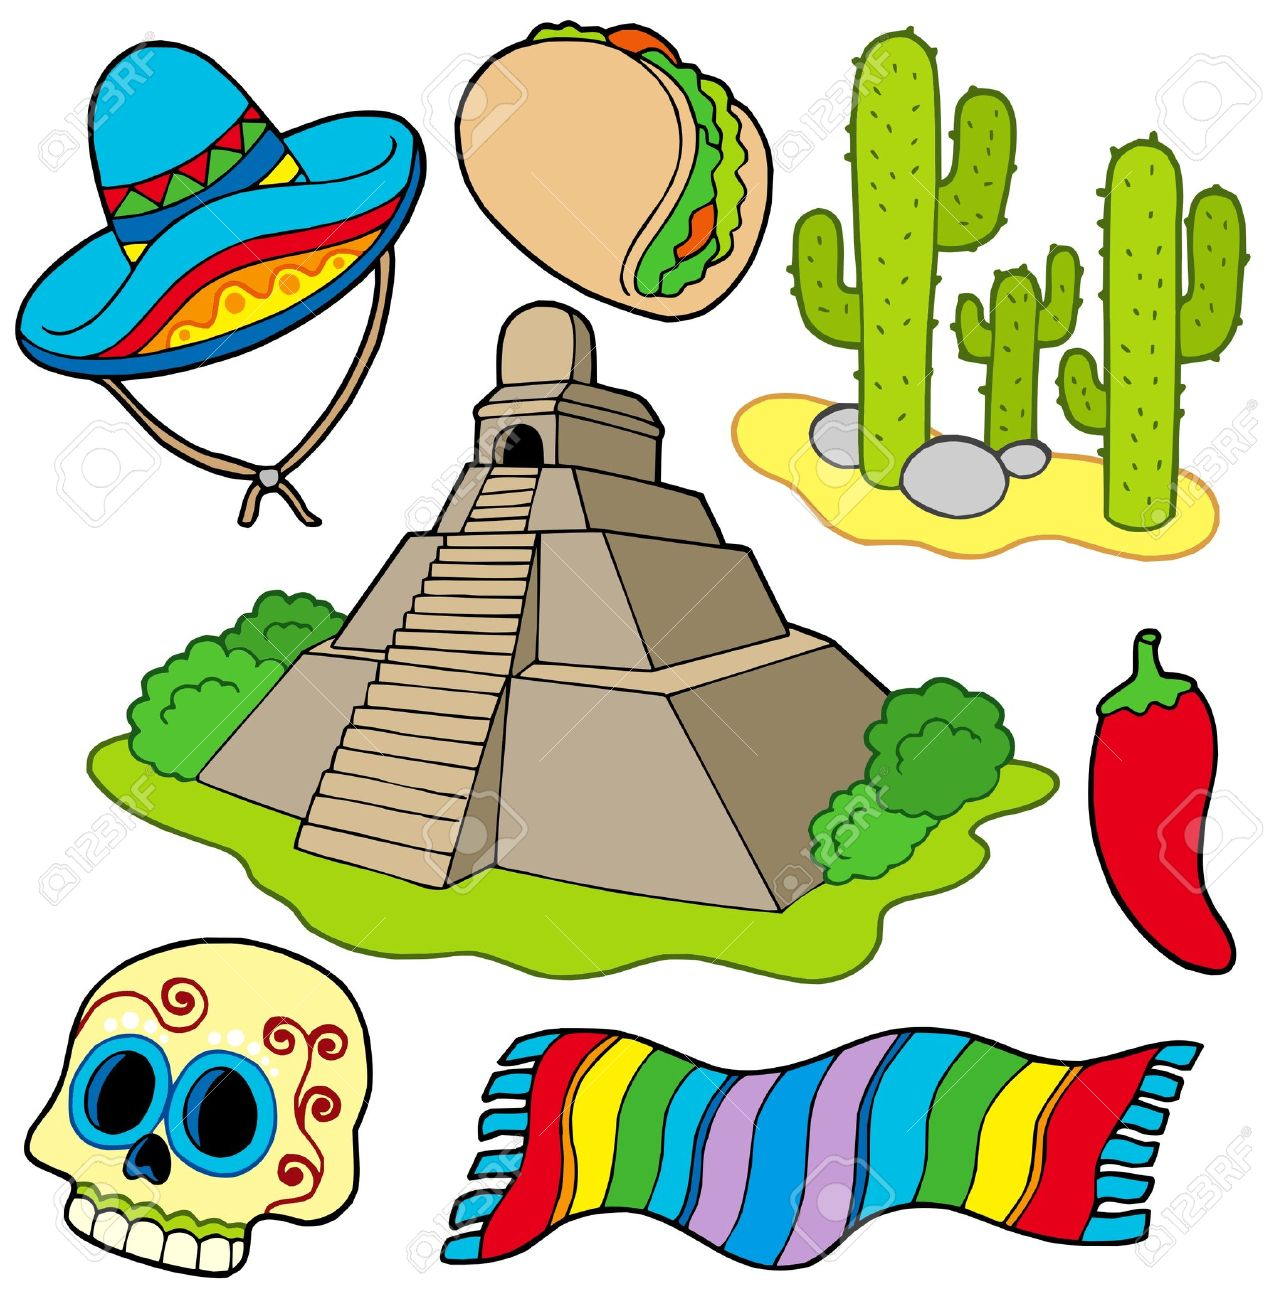 Mexicano clipart image transparent library Free Mexico Cliparts, Download Free Clip Art, Free Clip Art ... image transparent library